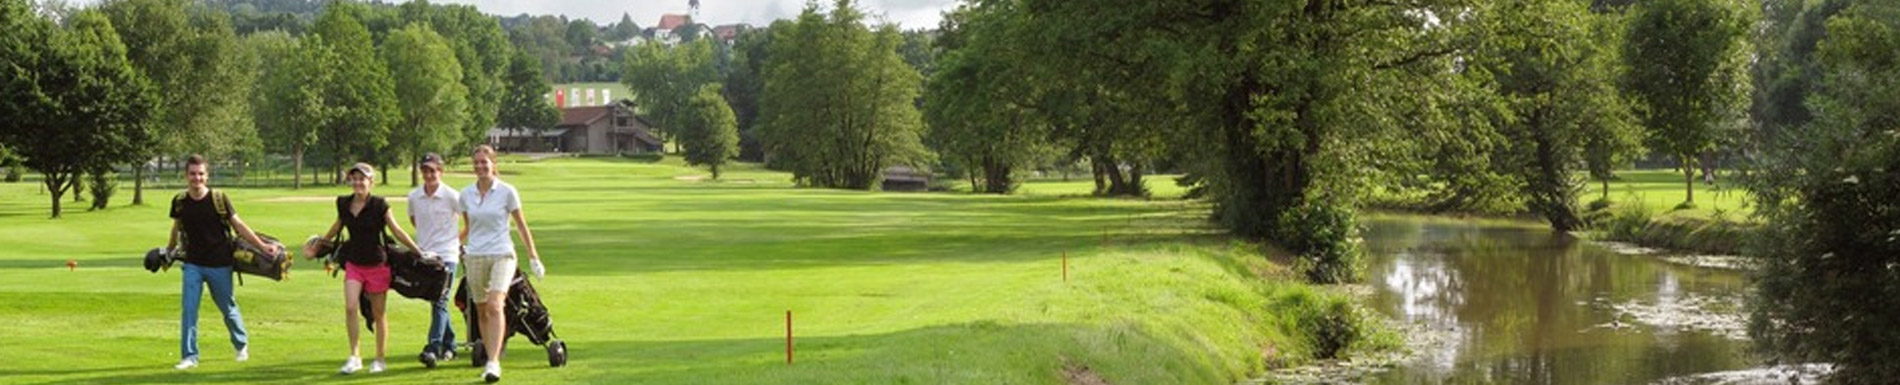 Rottaler Golf- & Country Club